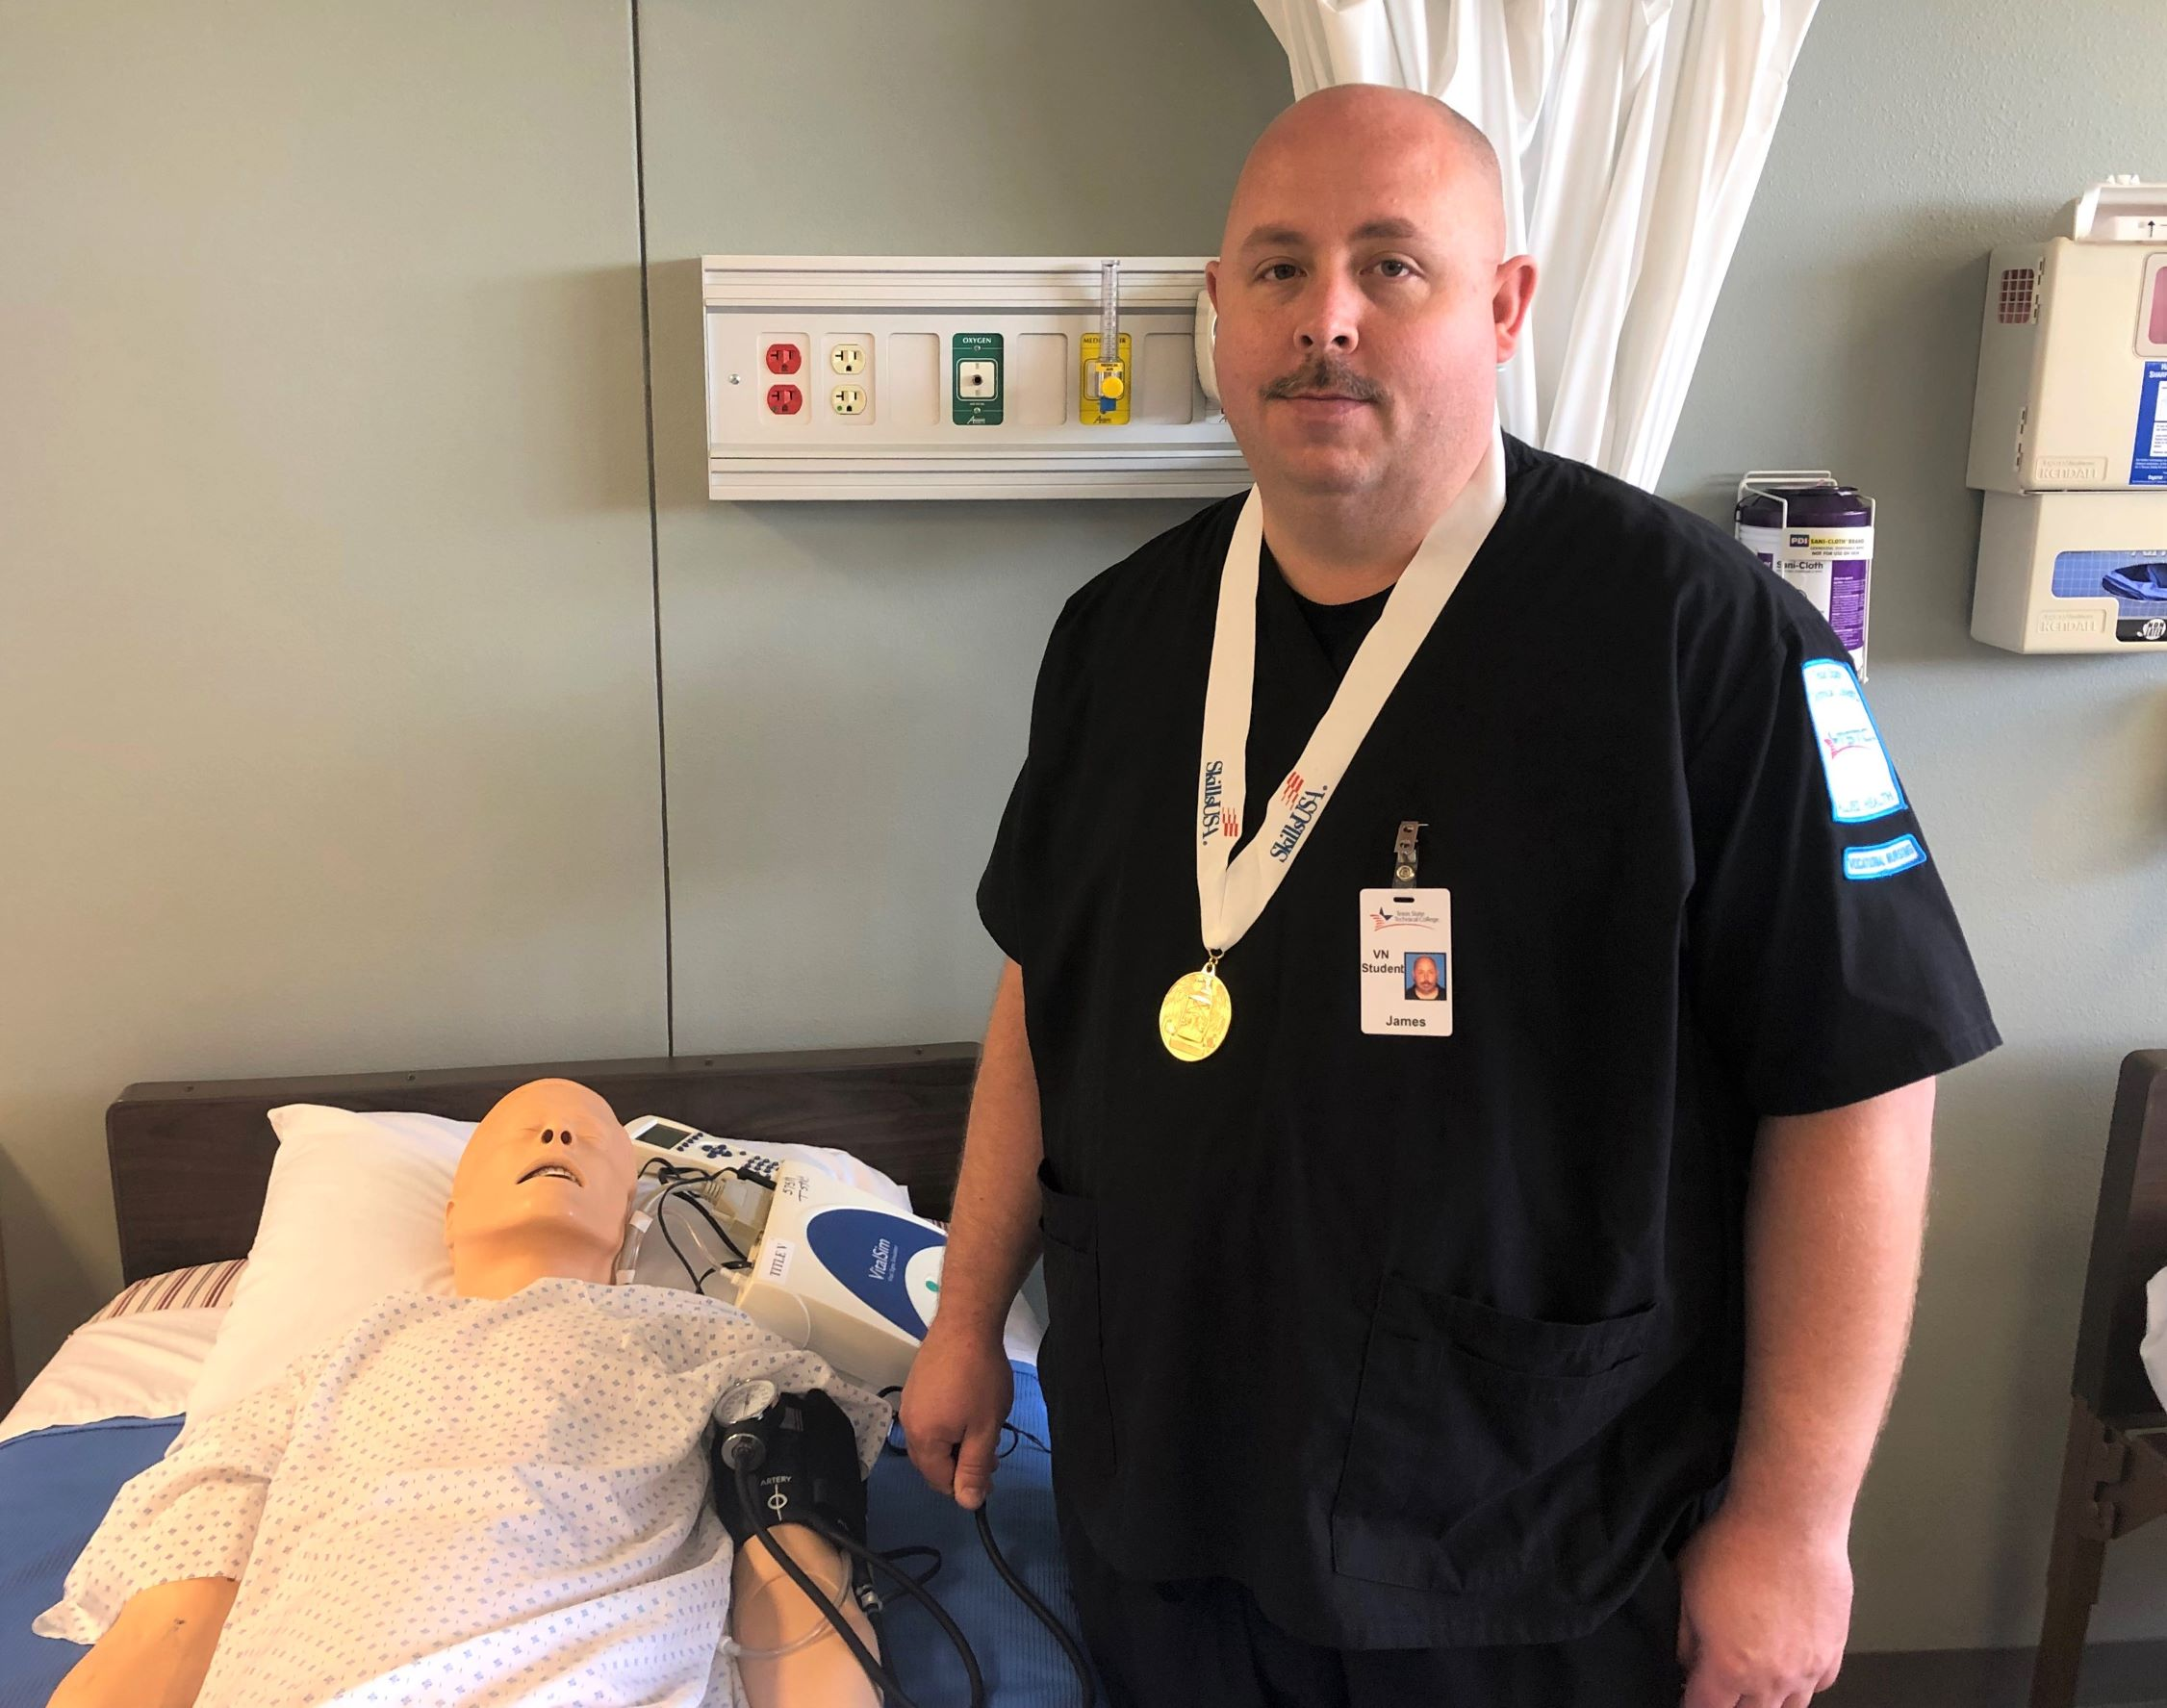 TSTC Student Veteran to Compete at SkillsUSA Nationals